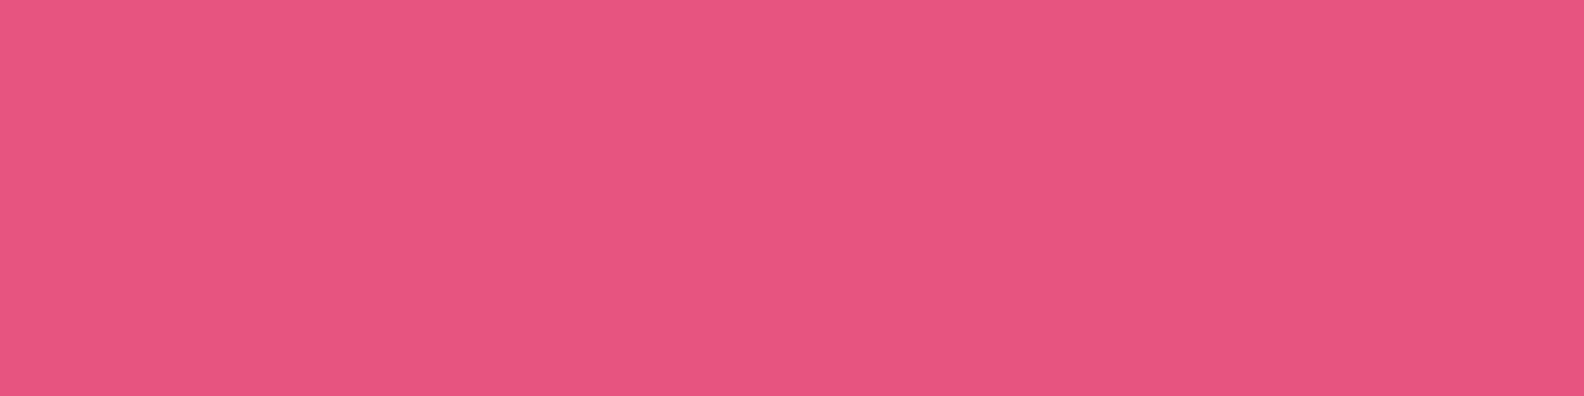 1584x396 Dark Pink Solid Color Background